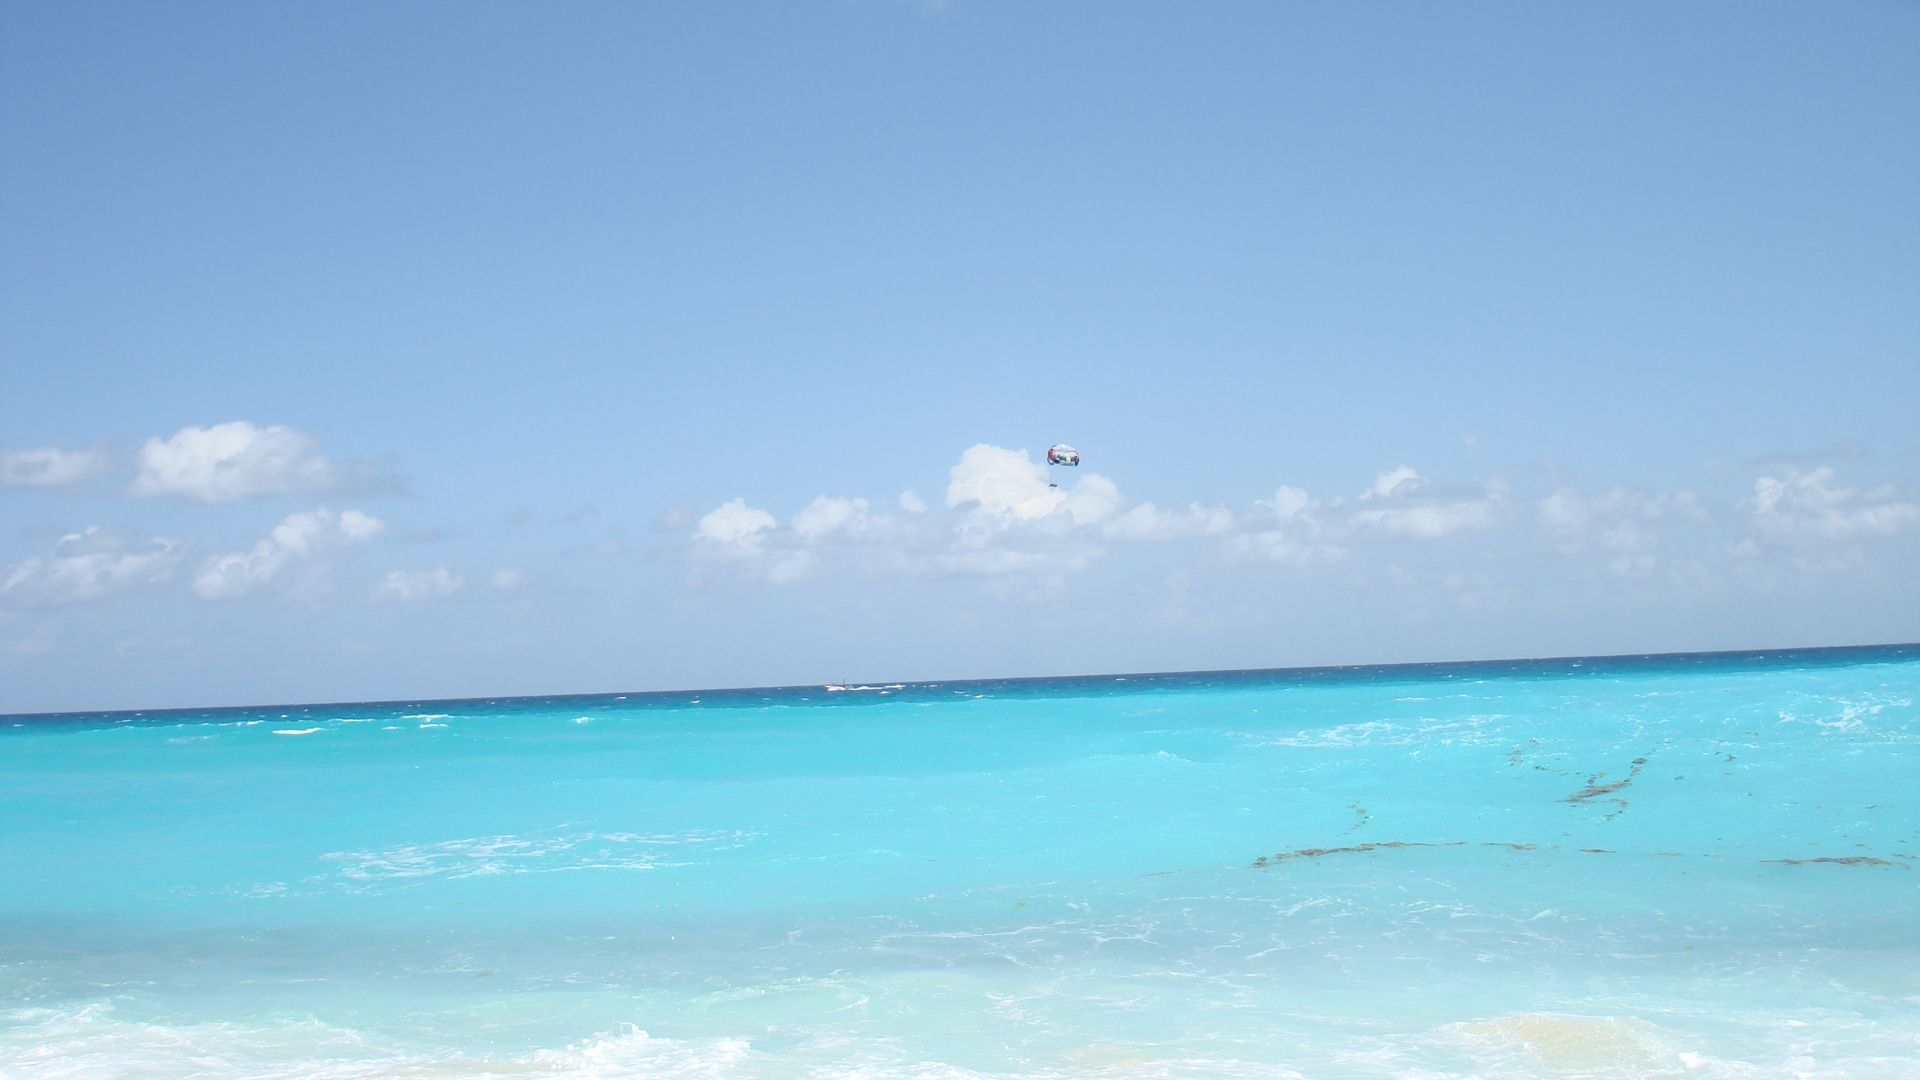 Cancun Mexico hd wallpaper download